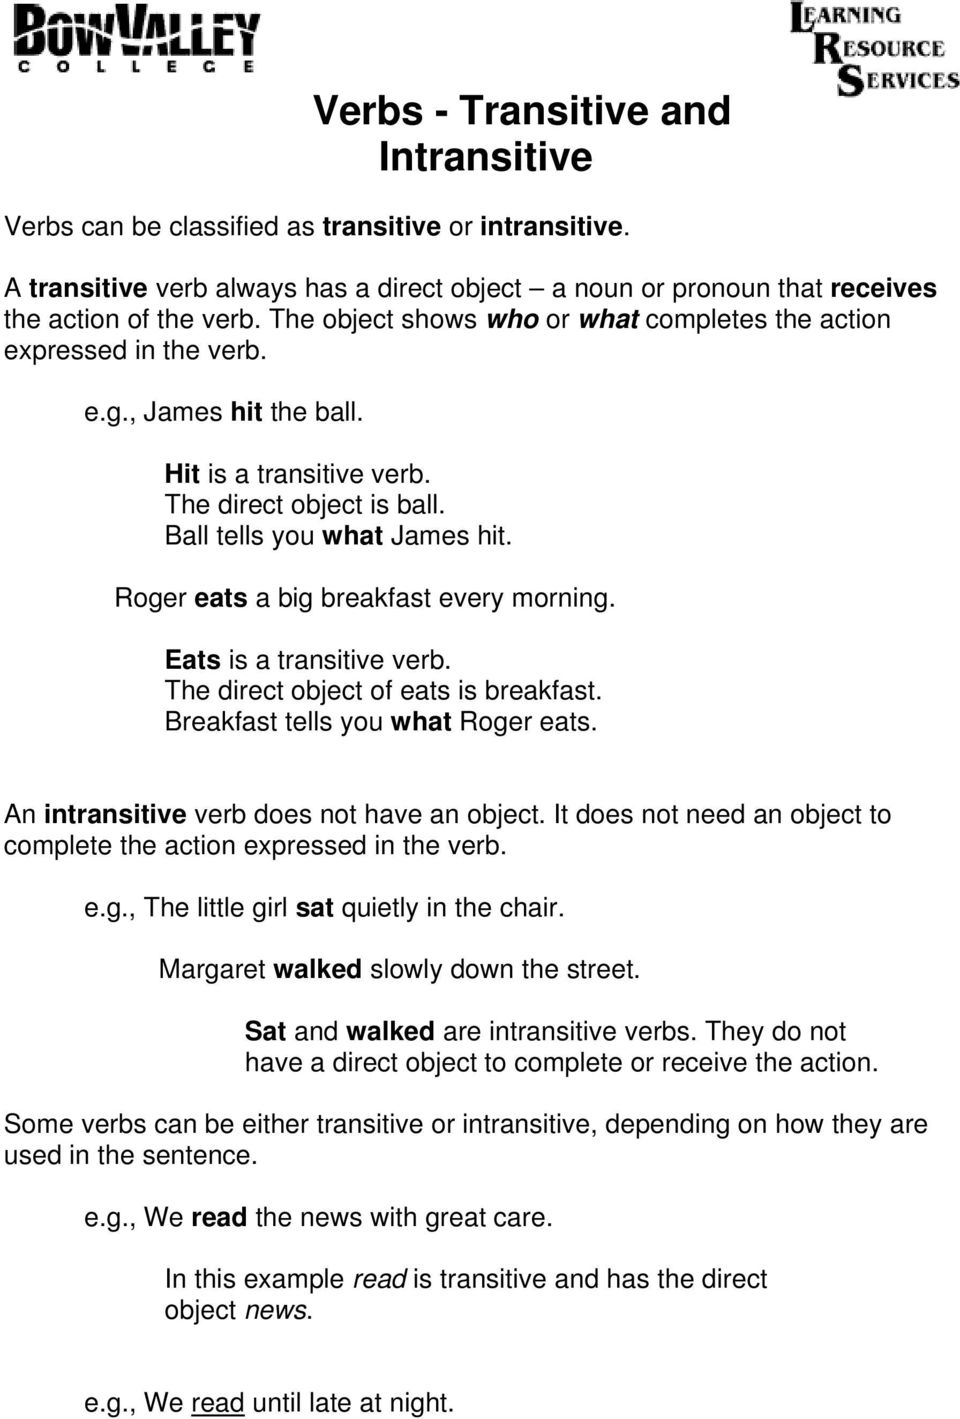 Verbs   Transitive and Intransitive   PDF as well  besides Transitive And Intransitive Verbs Custom Paper Academic On moreover Transitive and Intransitive Verbs   ppt video online download also  further  in addition Transitive Intransitive Verbs   ESL worksheet by jesica dasilva additionally Transitive and Intransitive Verb Worksheets   All Kids  work additionally worksheets  Subject Intransitive Verb Exercises Worksheets ly together with TRANSITIVE INTRANSITIVE VERBS moreover Transitive Verb Lesson Plans   Worksheets   Lesson Pla likewise 4 FREE ESL Verbs  Transitive or intransitive verbs  words that can in addition Transitive and intransitive verbs   adding  mas to relative as well Intransitive Verbs VS  Transitive Verbs besides Identifying Transitive and Intransitive Verbs by Ms Rebecca   TpT also Transitive and Intransitive   ESL worksheet by afiallo. on transitive and intransitive verbs worksheet